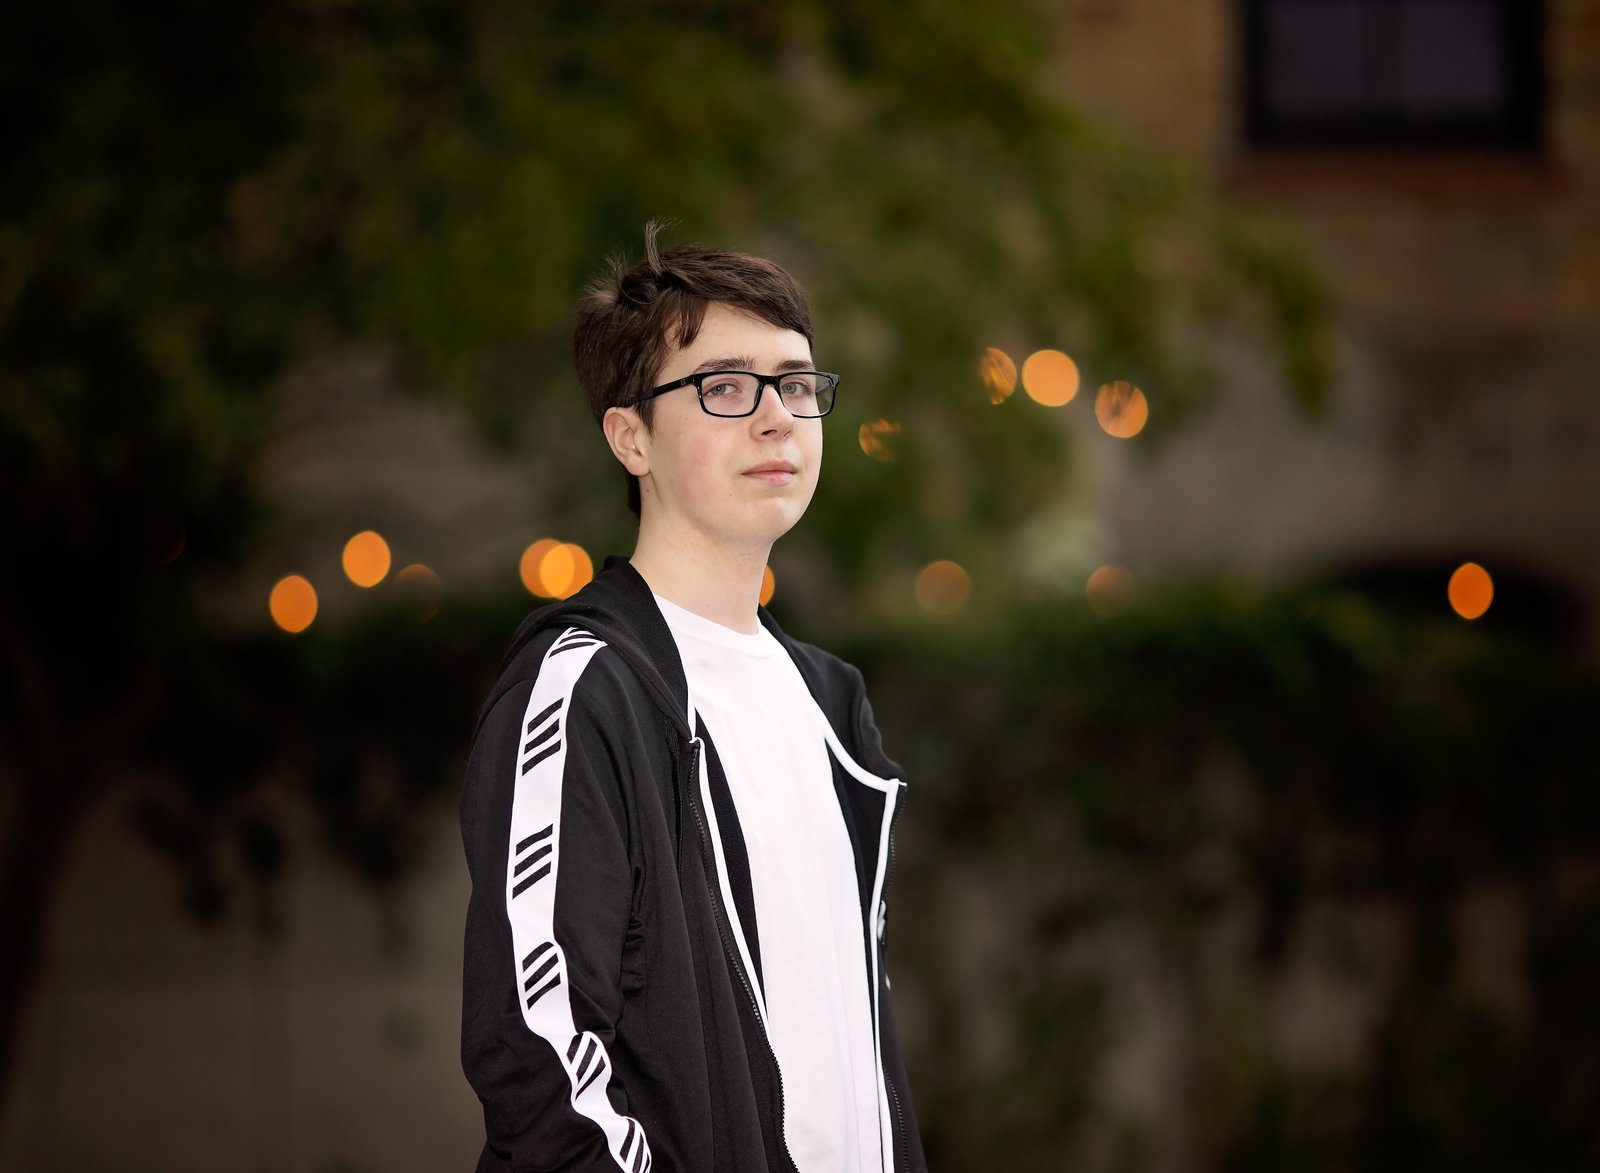 Senior portraits of boy with Bokeh in background